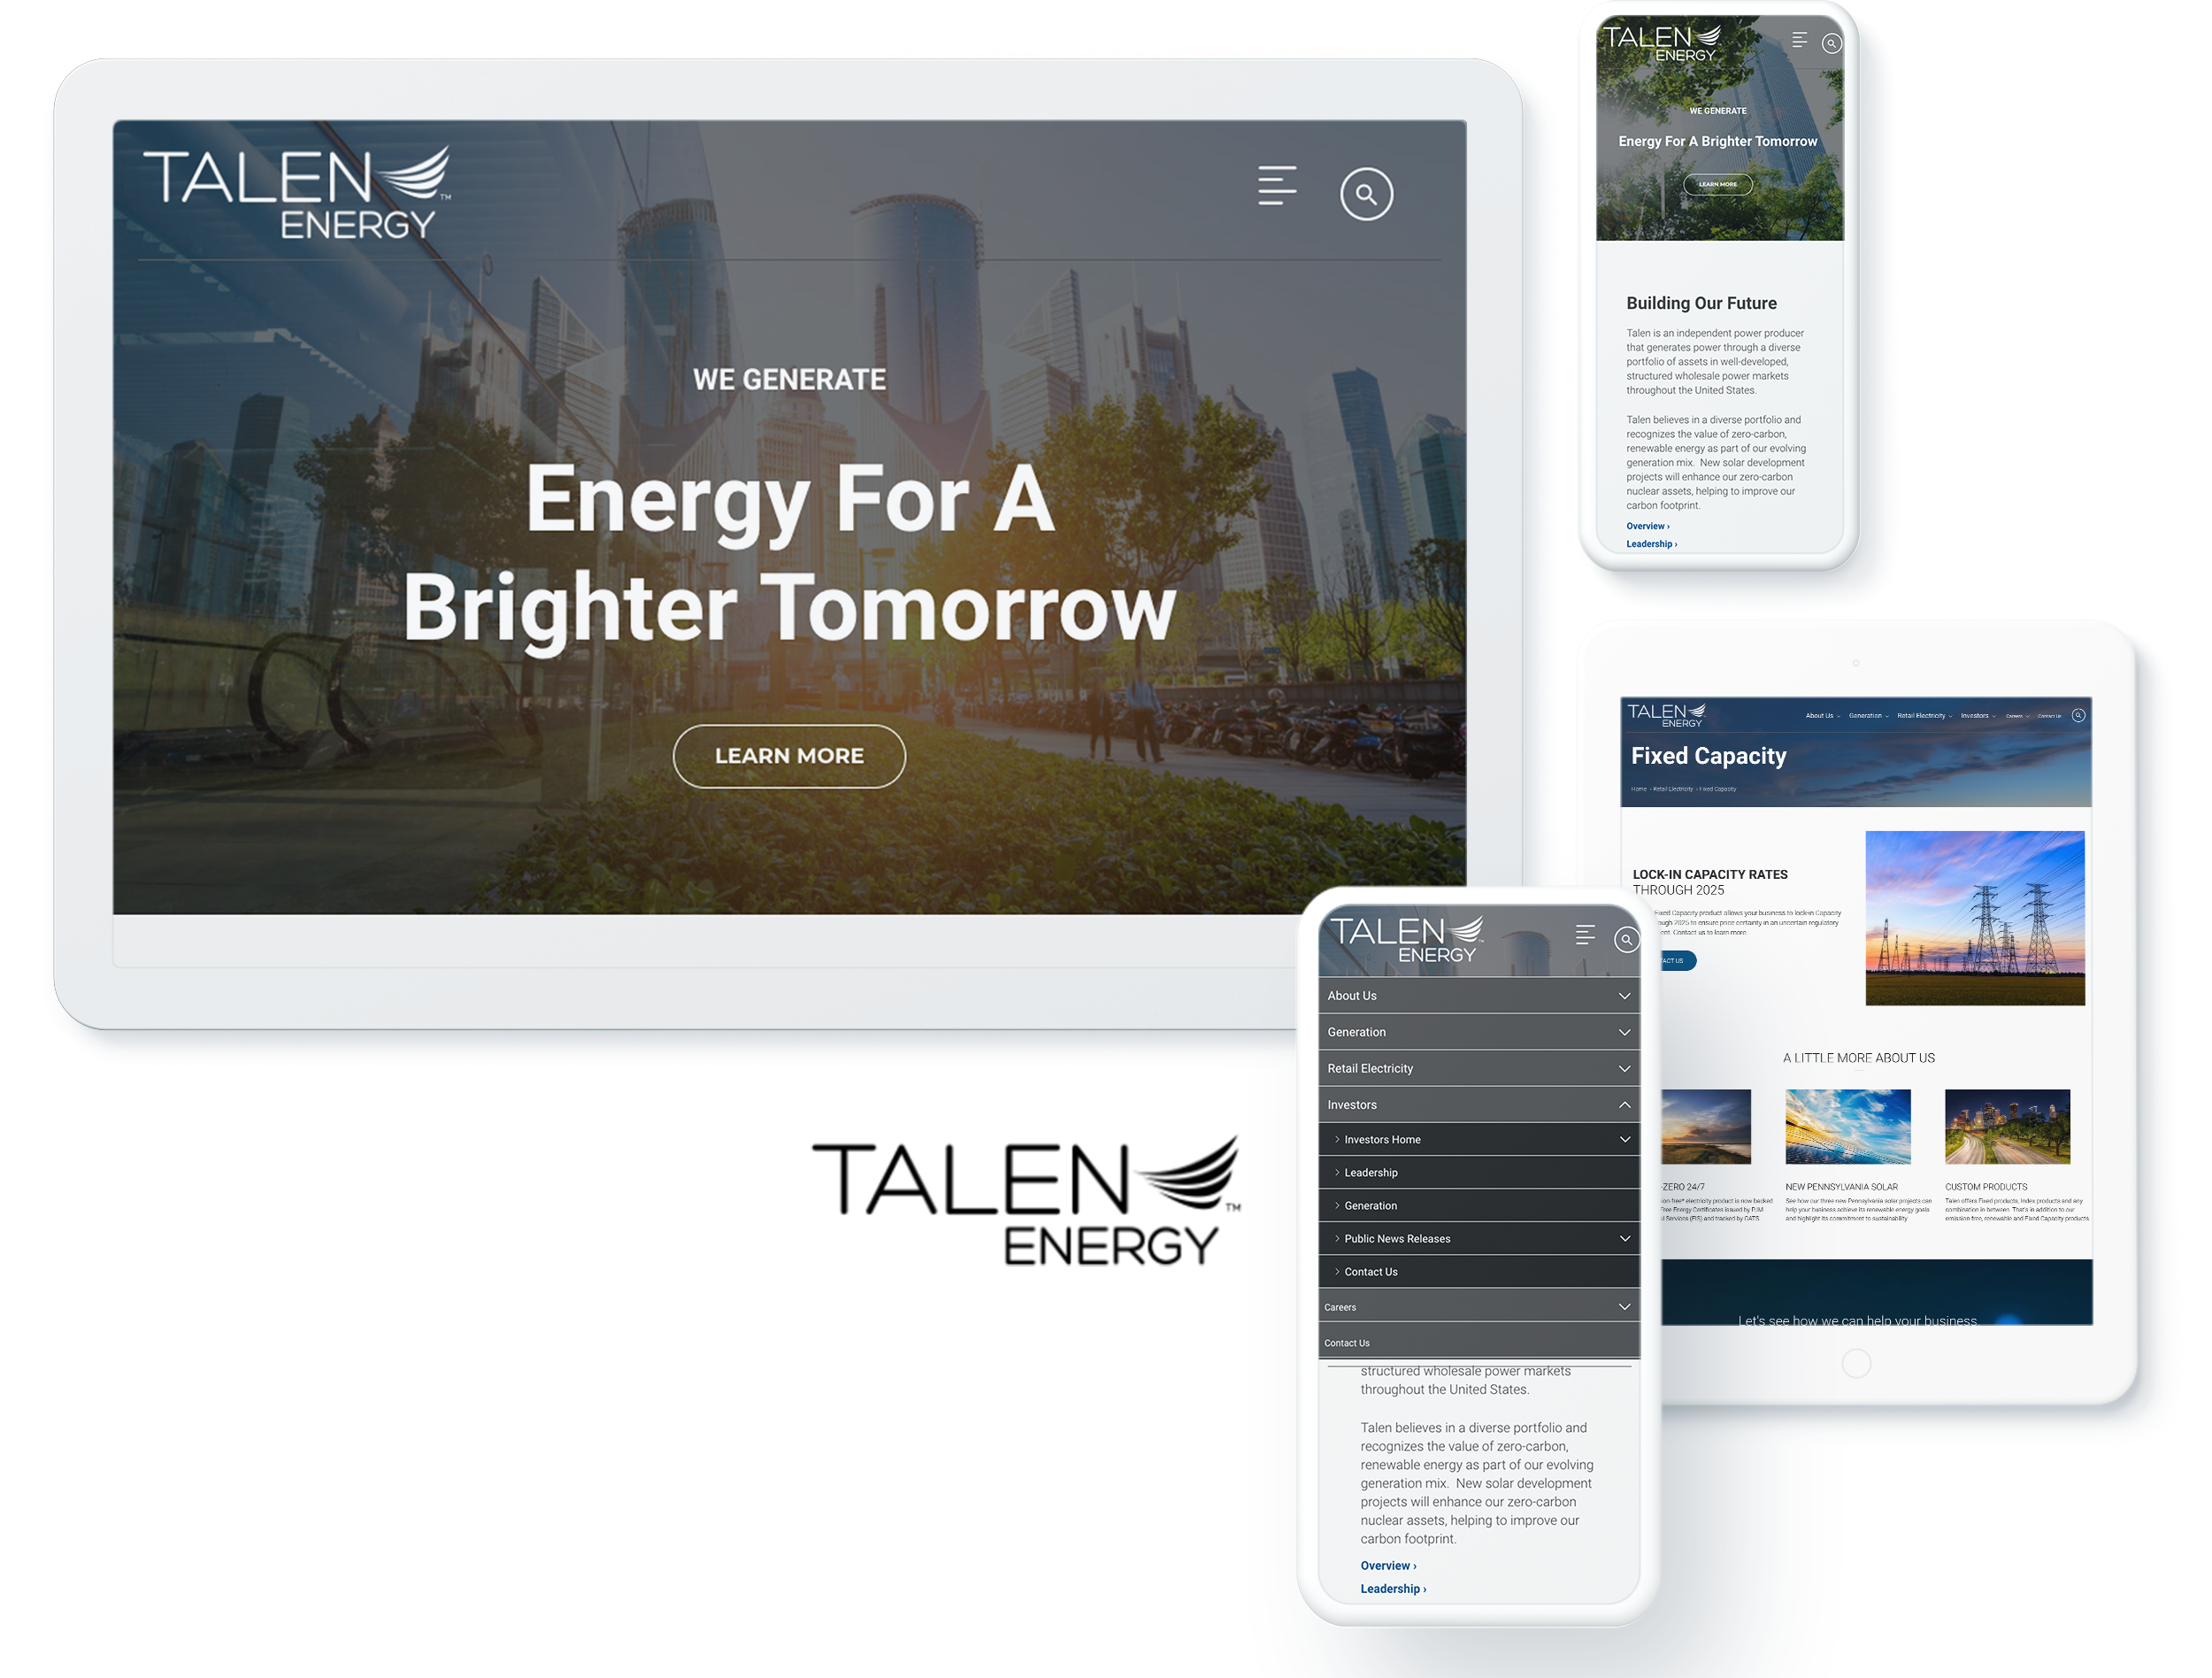 TALEN ENERGY SCREENS